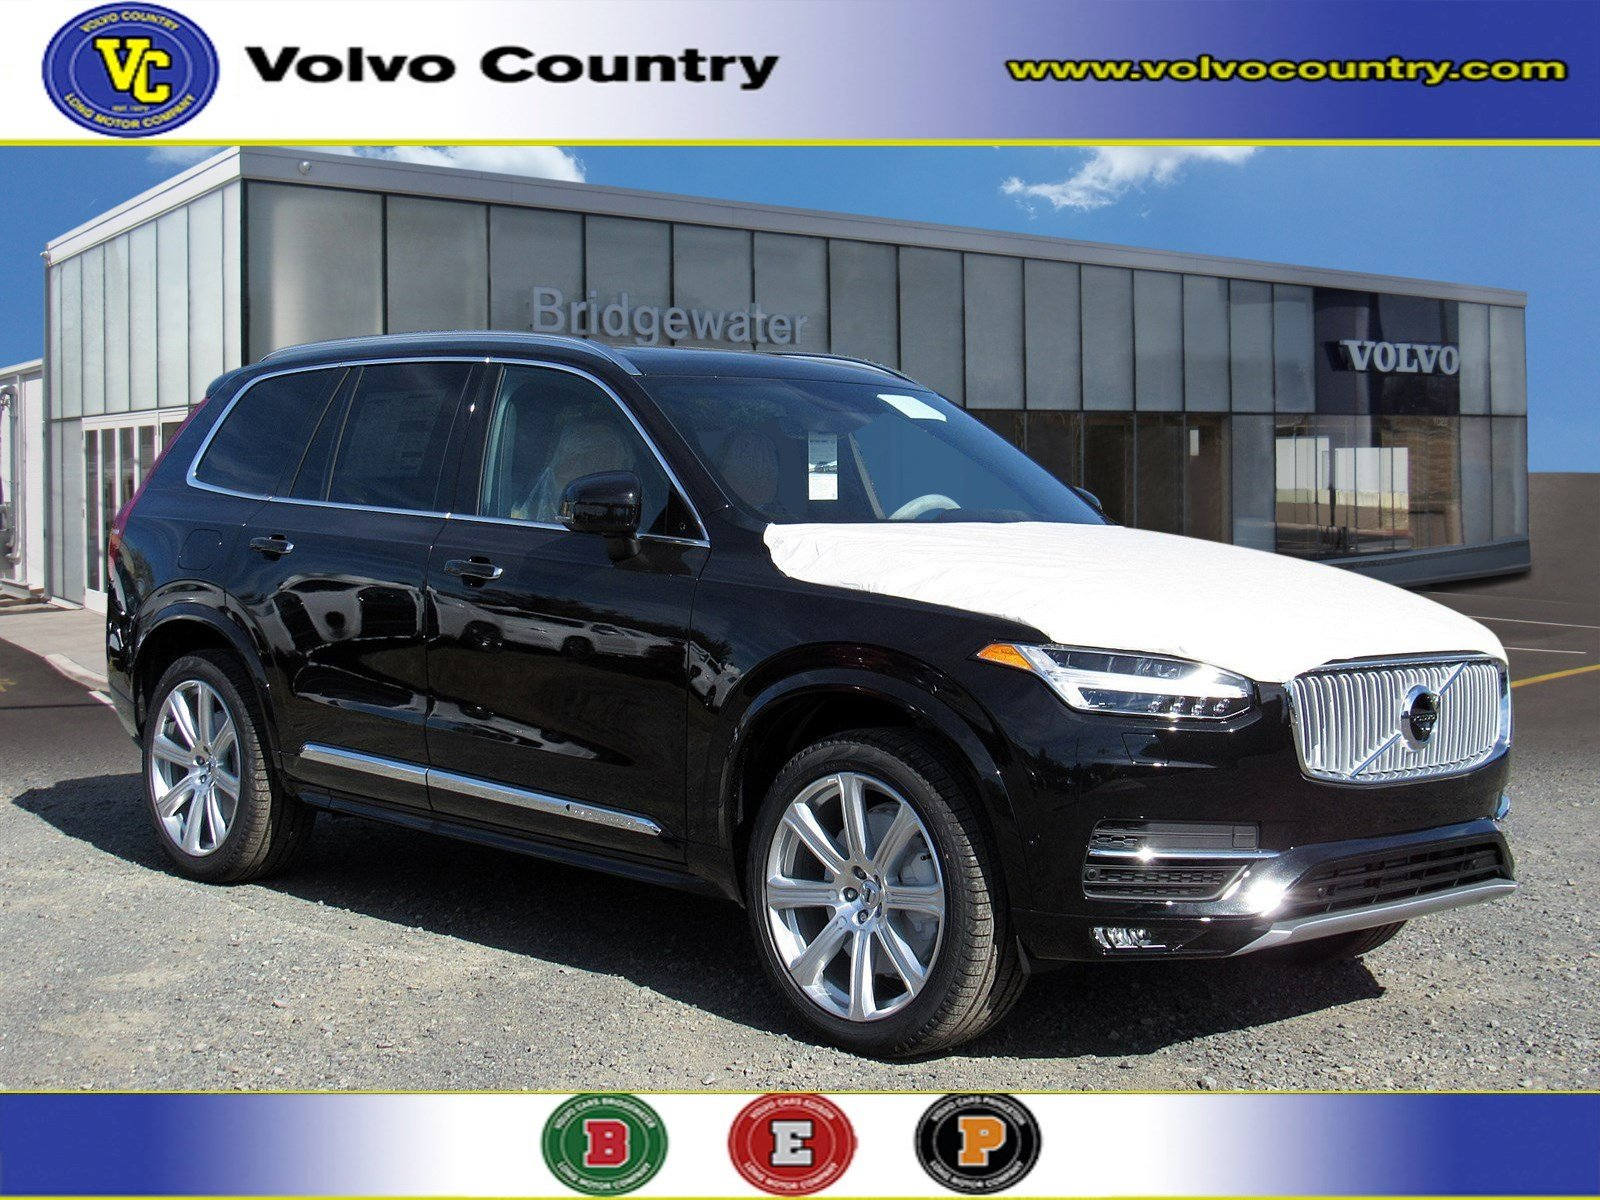 New 2019 Volvo Xc90 T6 Inscription For Sale Lease In Somerville Nj Vin Yv4a22plxk1447522